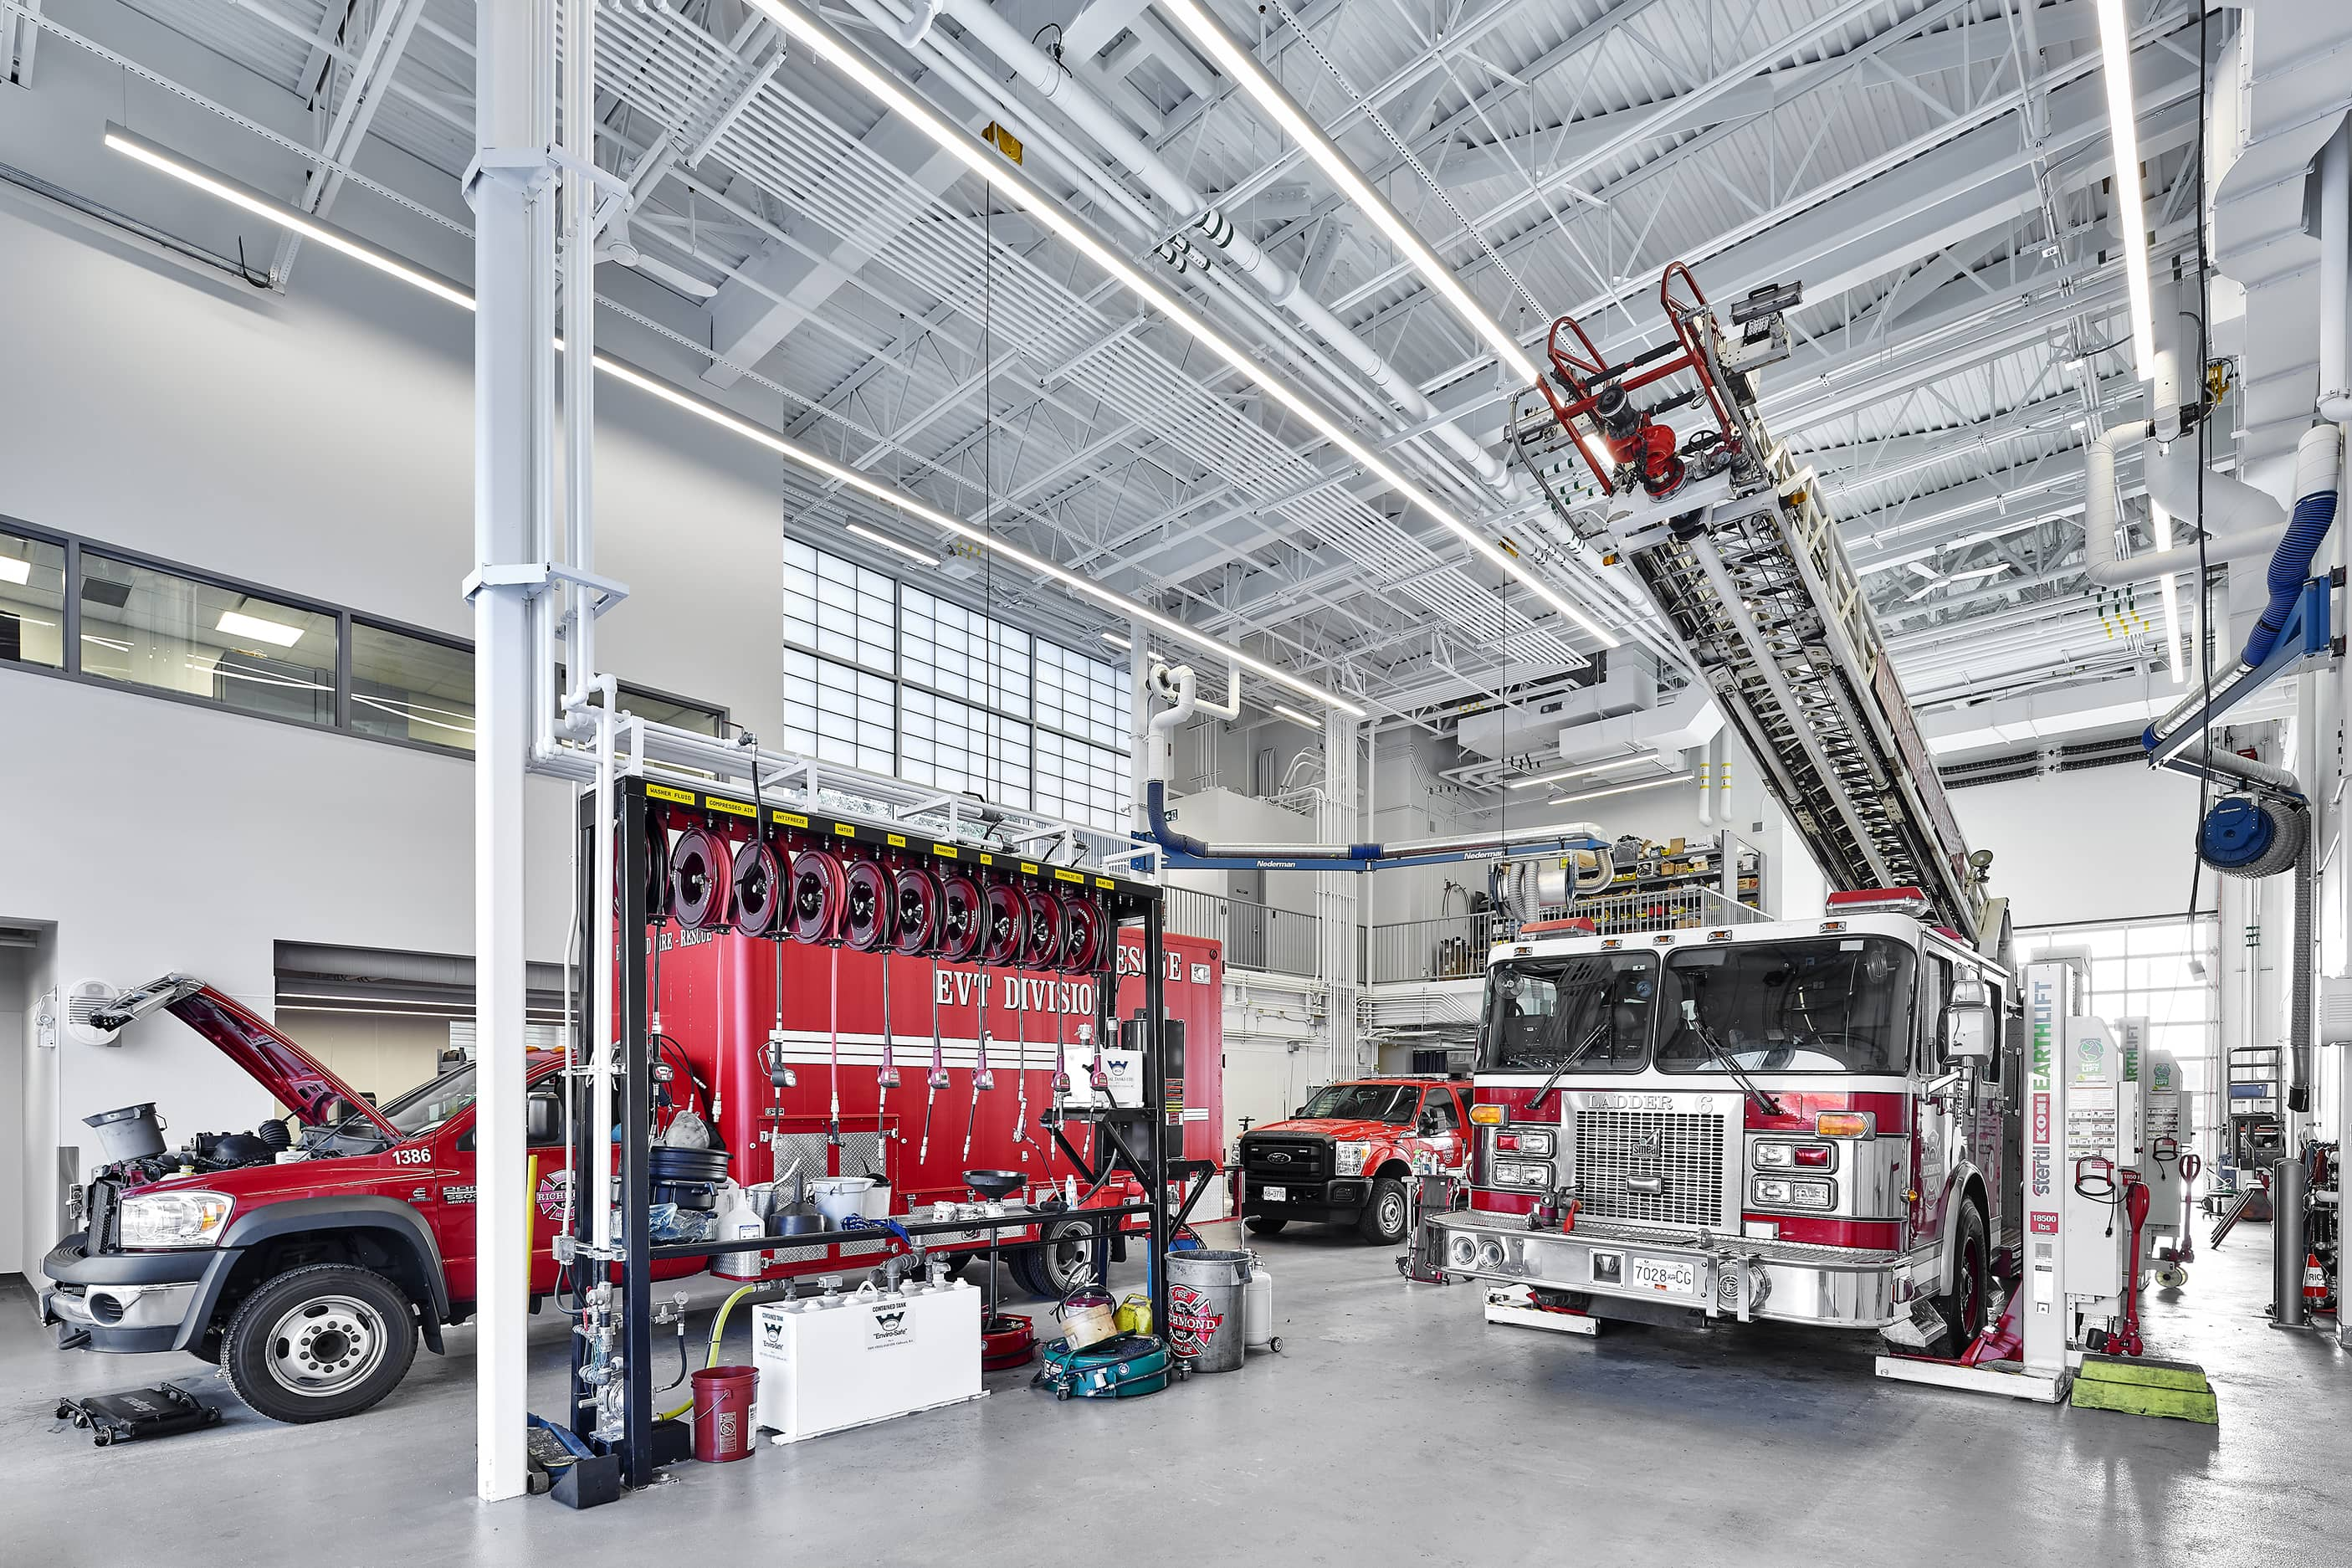 bbp cambie fire hall no. 3 & ambulance station garage 1